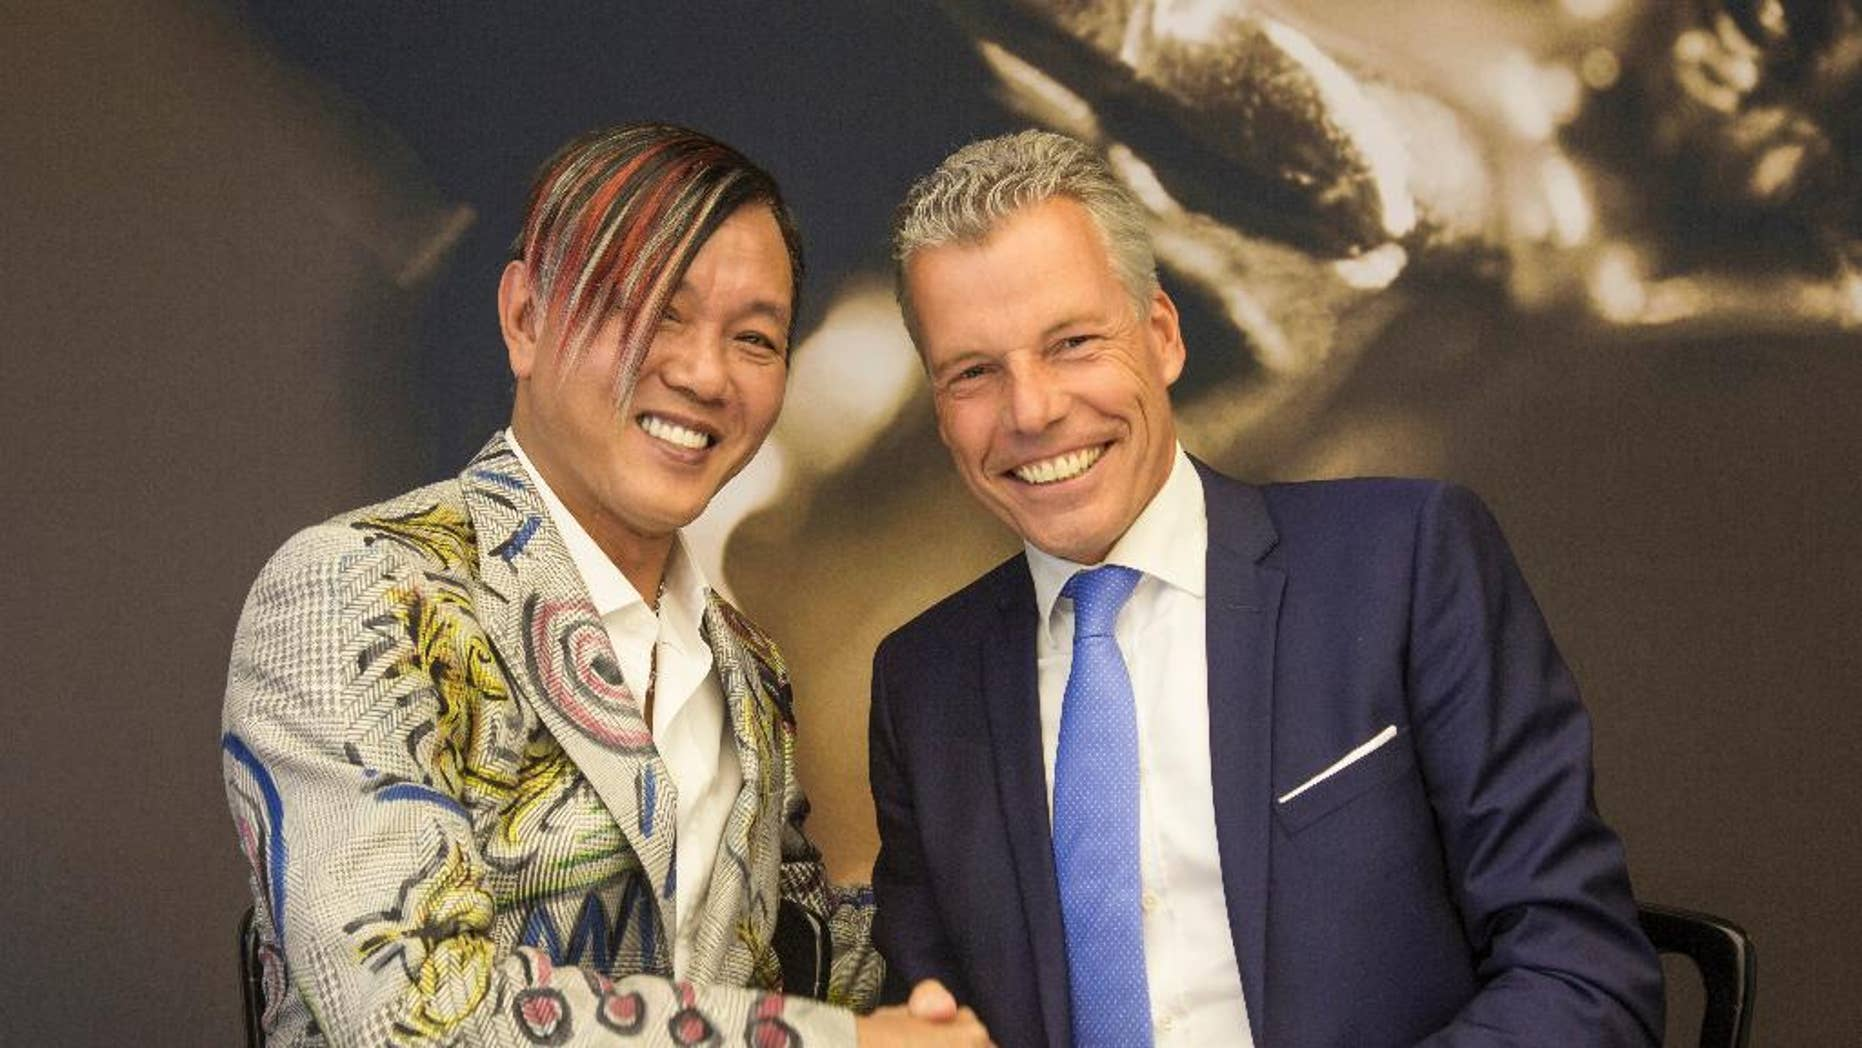 In this Tuesday, Sept. 16, 2014 photo provided by Rolls-Royce Motor Cars, Louis XIII Holdings Ltd. Chairman Stephen Hung, left, poses with Rolls-Royce Motor Cars CEO Torsten Mueller-Oetvoes at the Rolls-Royce's headquarters in Goodwood, Britain. Hung, a Hong Kong tycoon, placed the biggest ever order for Rolls-Royce cars, agreeing to buy 30 Phantoms for $20 million for a luxury resort he's building in the global gambling capital of Macau. Hung and Rolls-Royce executives signed the deal Tuesday at the company's Goodwood factory. (AP Photo/Rolls-Royce Motor Cars, Mark Bramley)